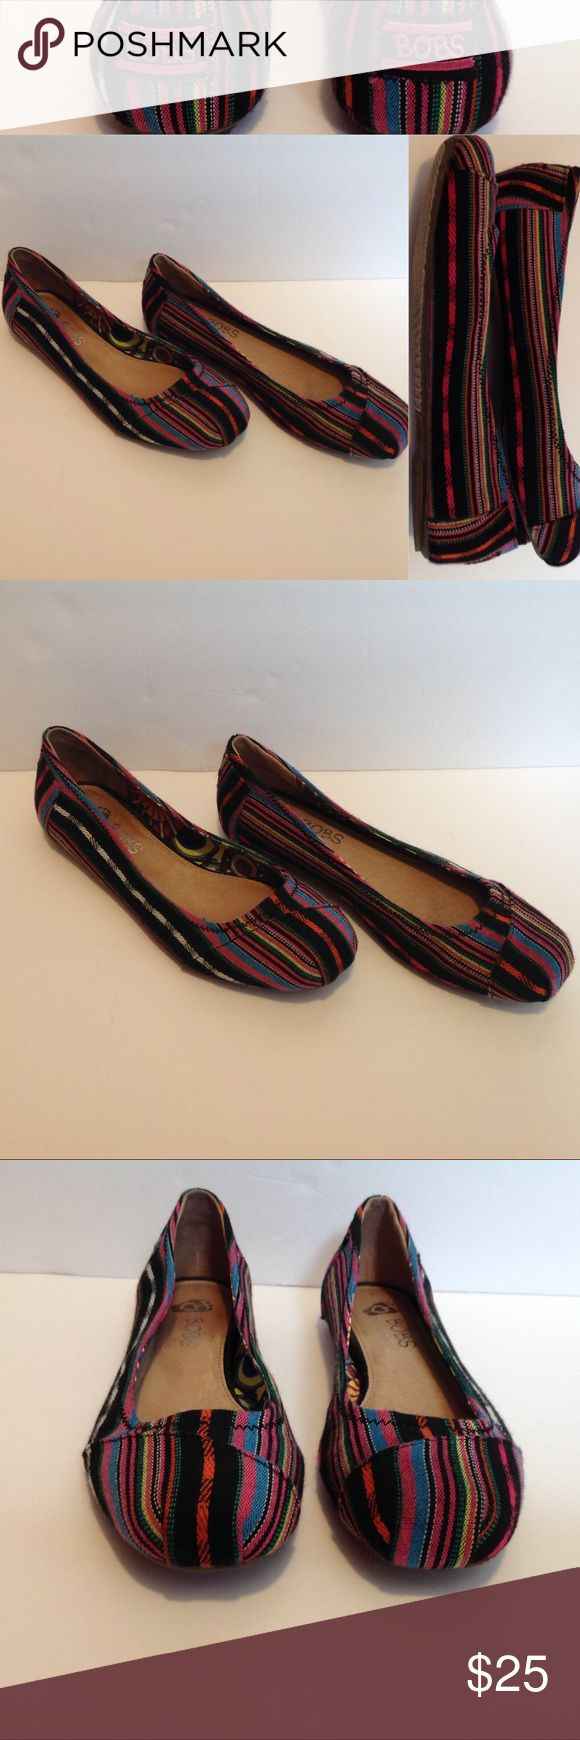 BOBS multicolor festival flats Additional description: sketchers BOBS  Condition: great - signs of wear on inside sole and a little on bottom. Outside in excellent condition See pictures for measurements.  Feel free to make a responsible offer. I do offer a bundle discount!  Happy shopping  BOBS Shoes Flats & Loafers